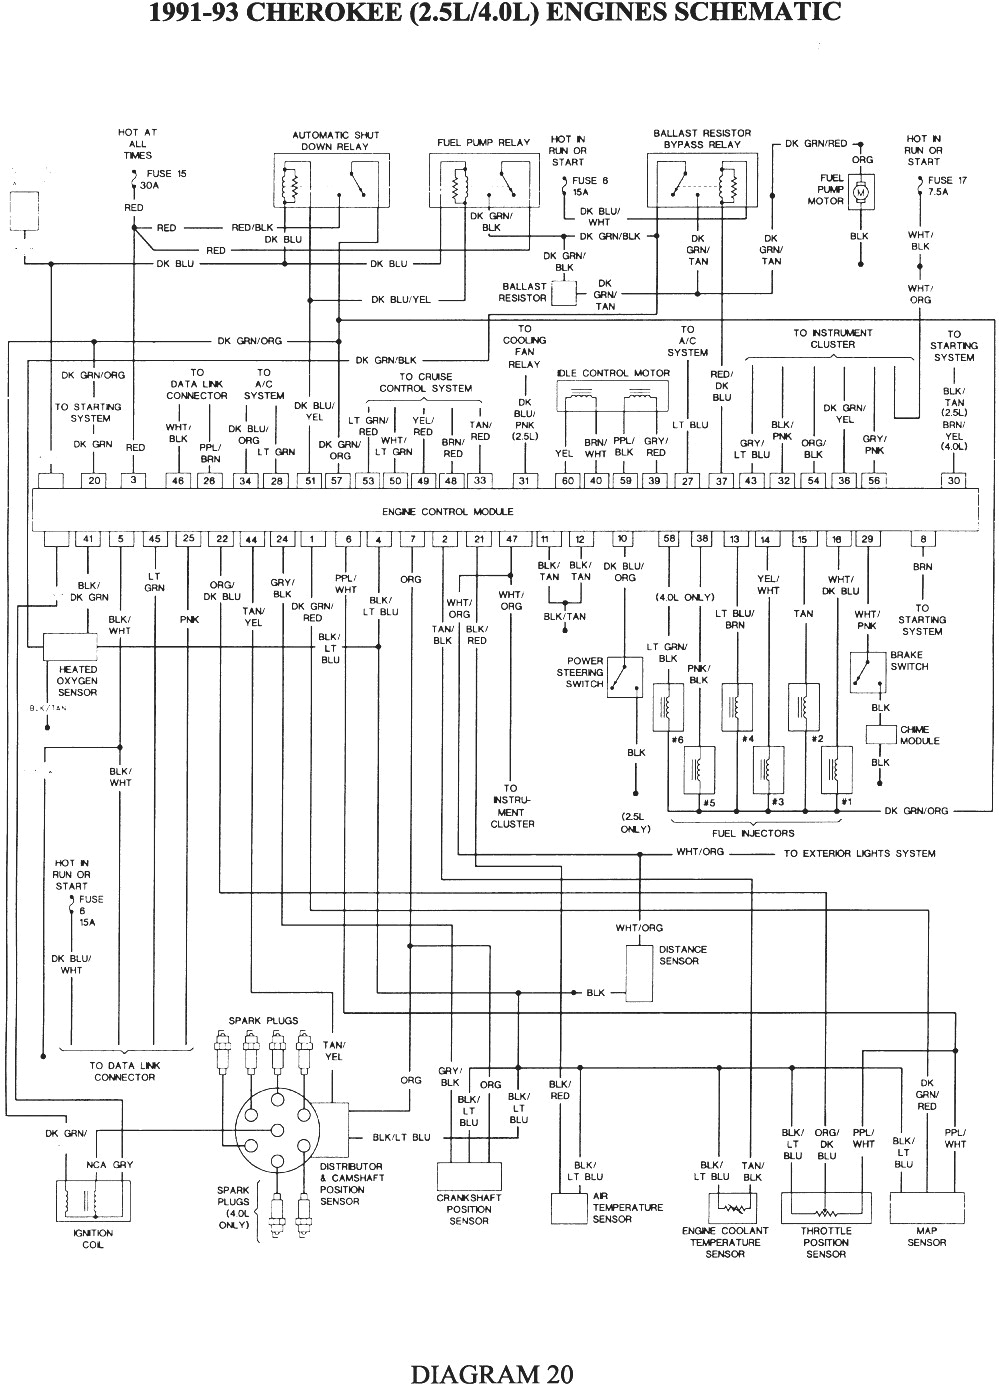 wire diagram jeep cherokee wiring diagram for youwire diagram for jeep cherokee data diagram schematic wiring